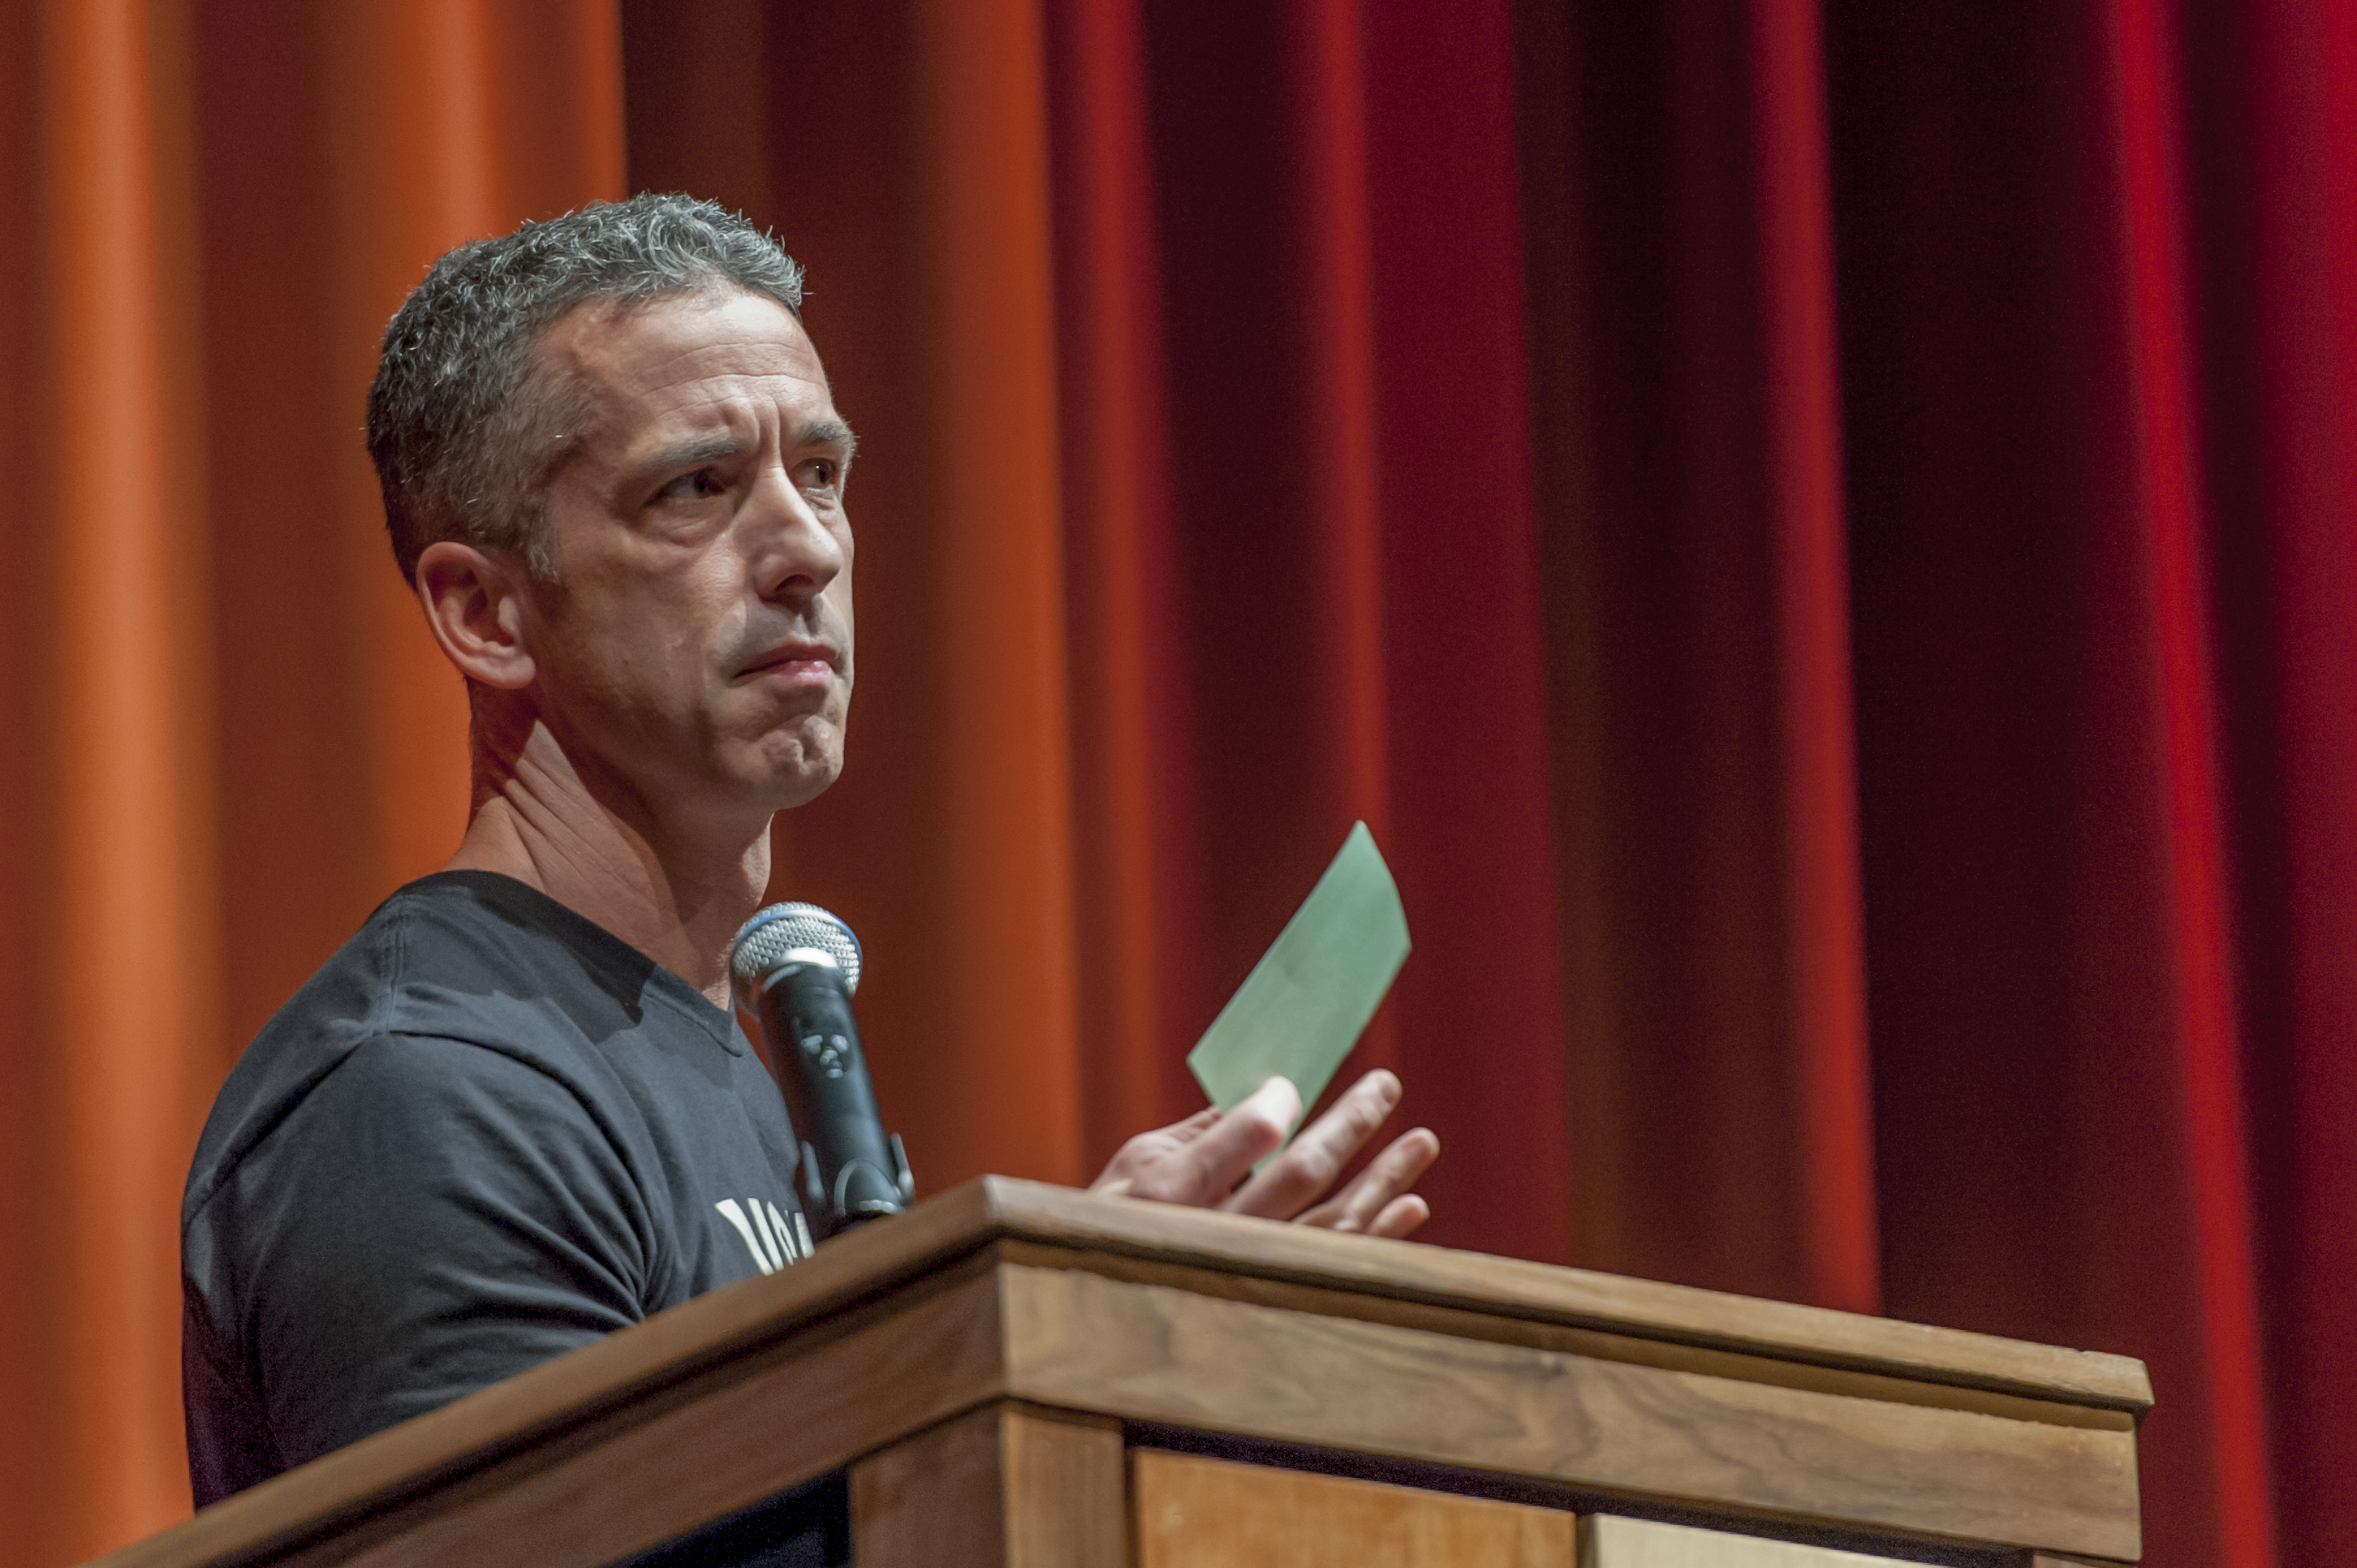 Dan Savage, visibly disturbed by Halifax's questions (photo by Chris Parent)